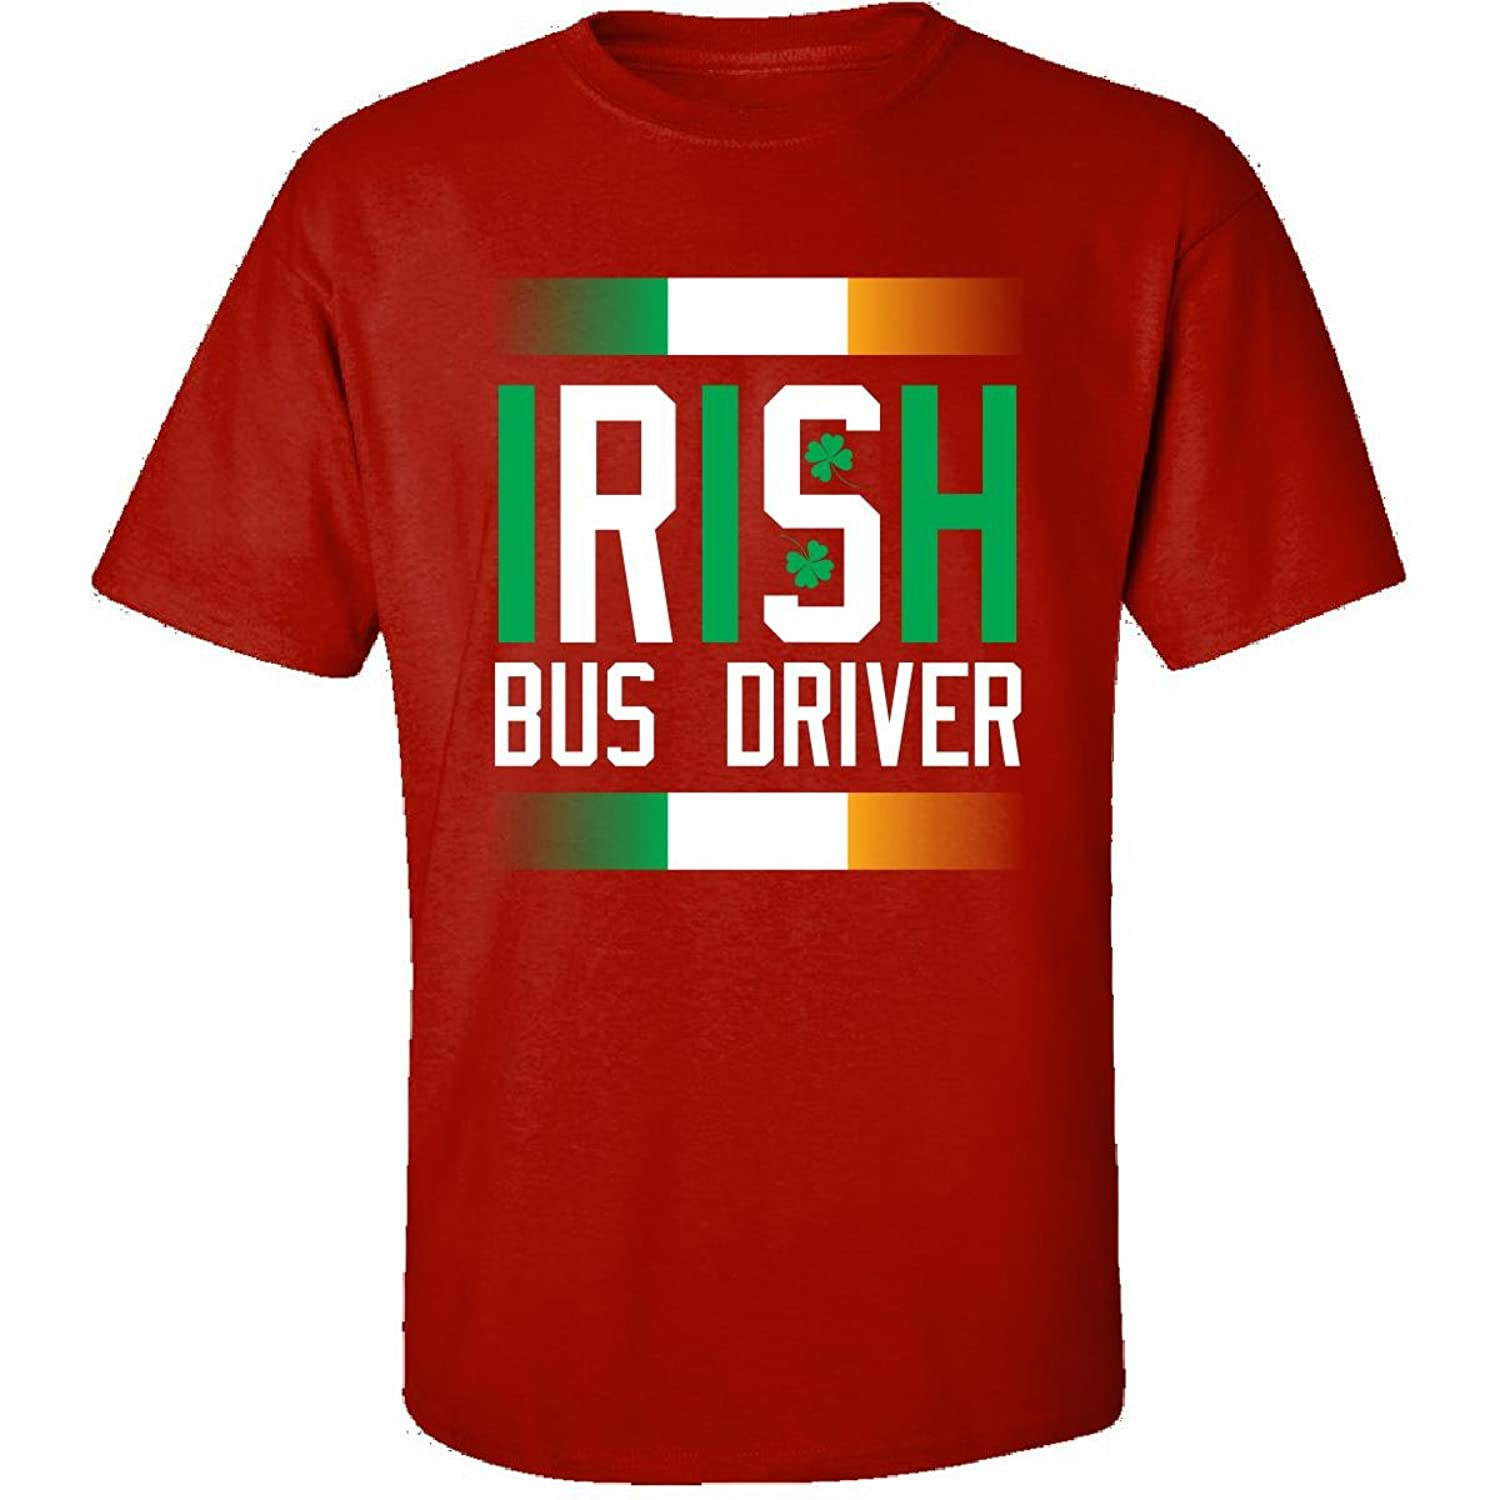 Irish Bus Driver Beautiful St Patrick Day Gift For Bus Driver - Adult Shirt